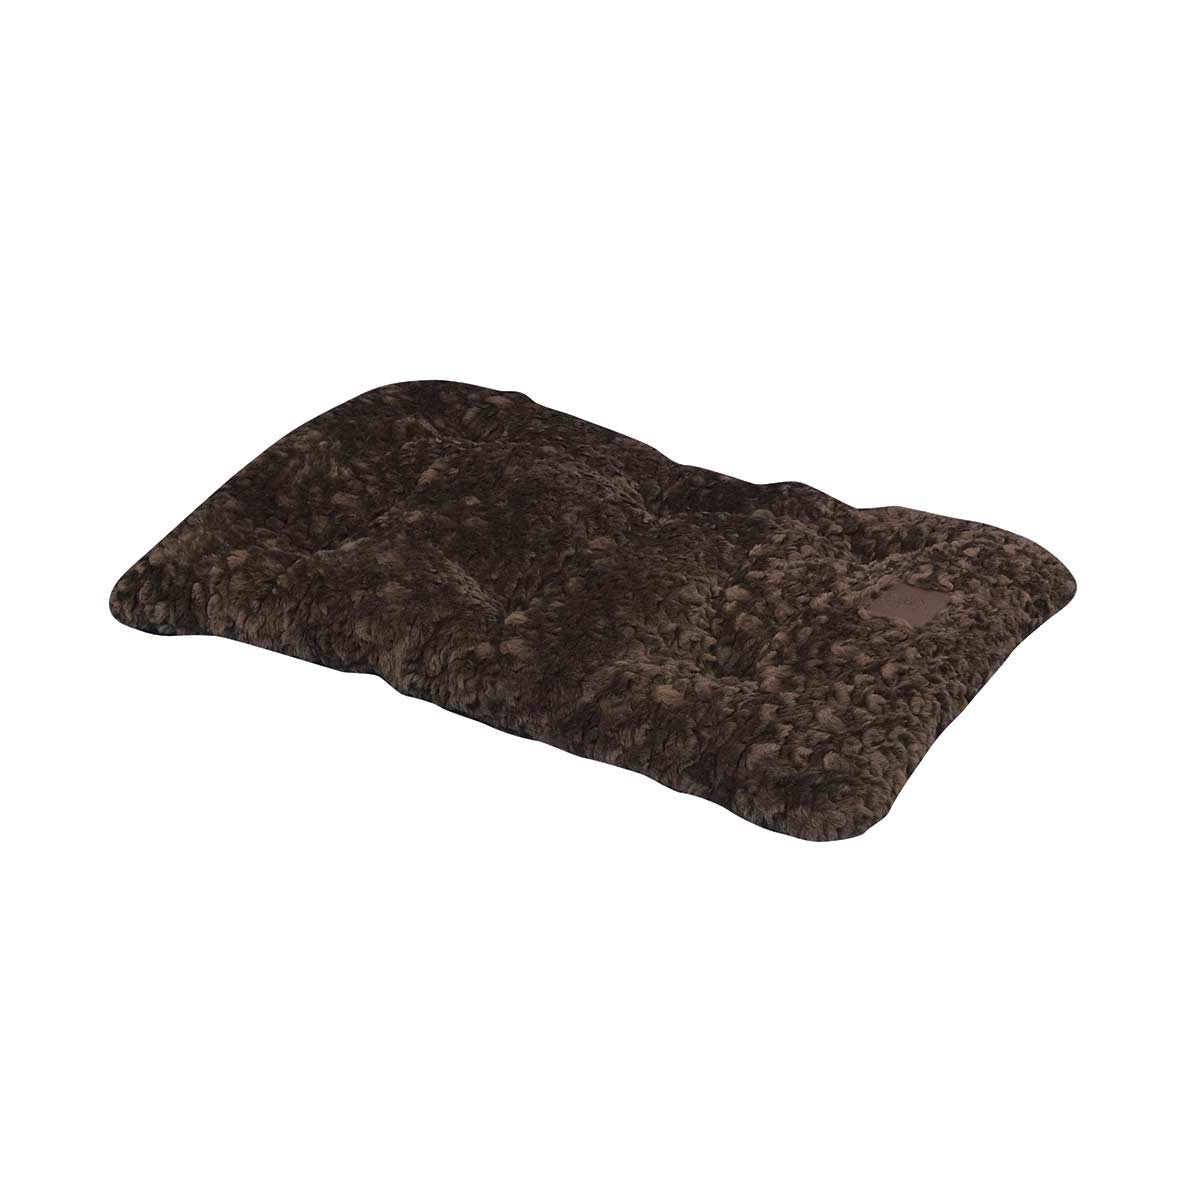 Snoozzy Cozy Comforter Chocolate Brown Pet Bed 23 inches by 16 inches